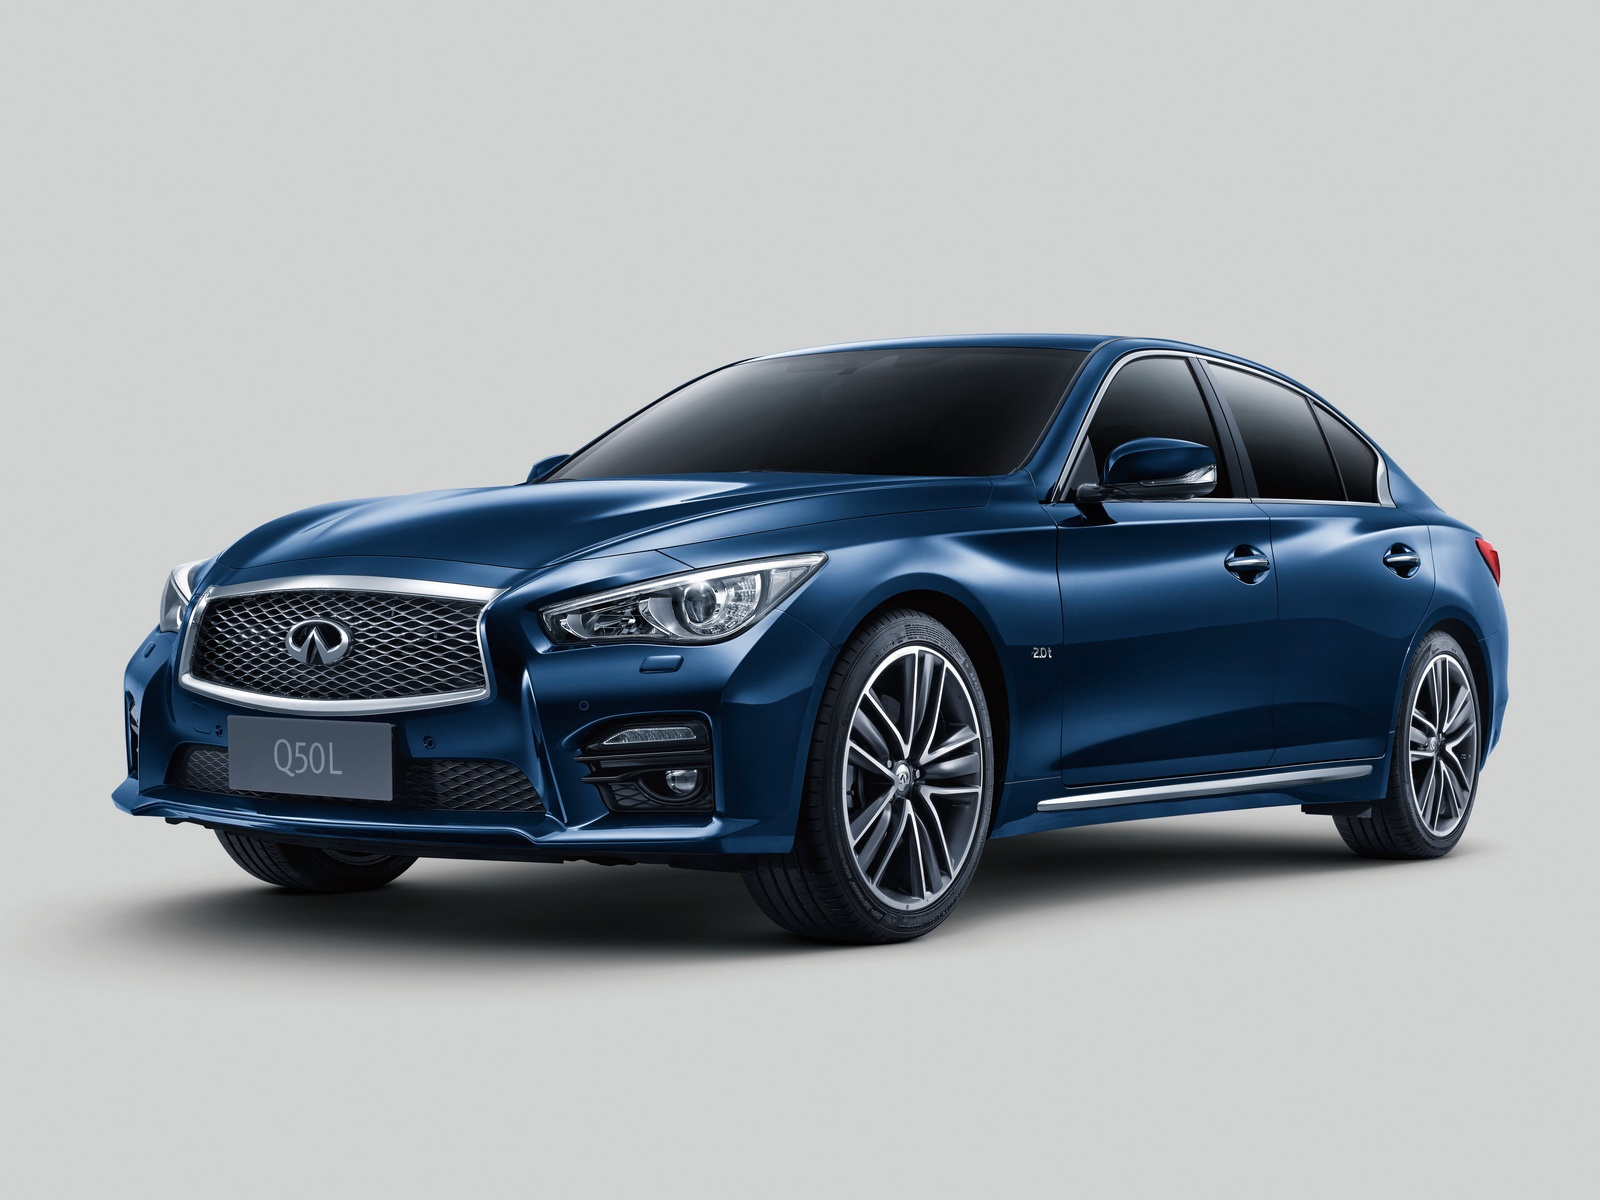 Infiniti Offers Free Maintenance Program For Q50l In China